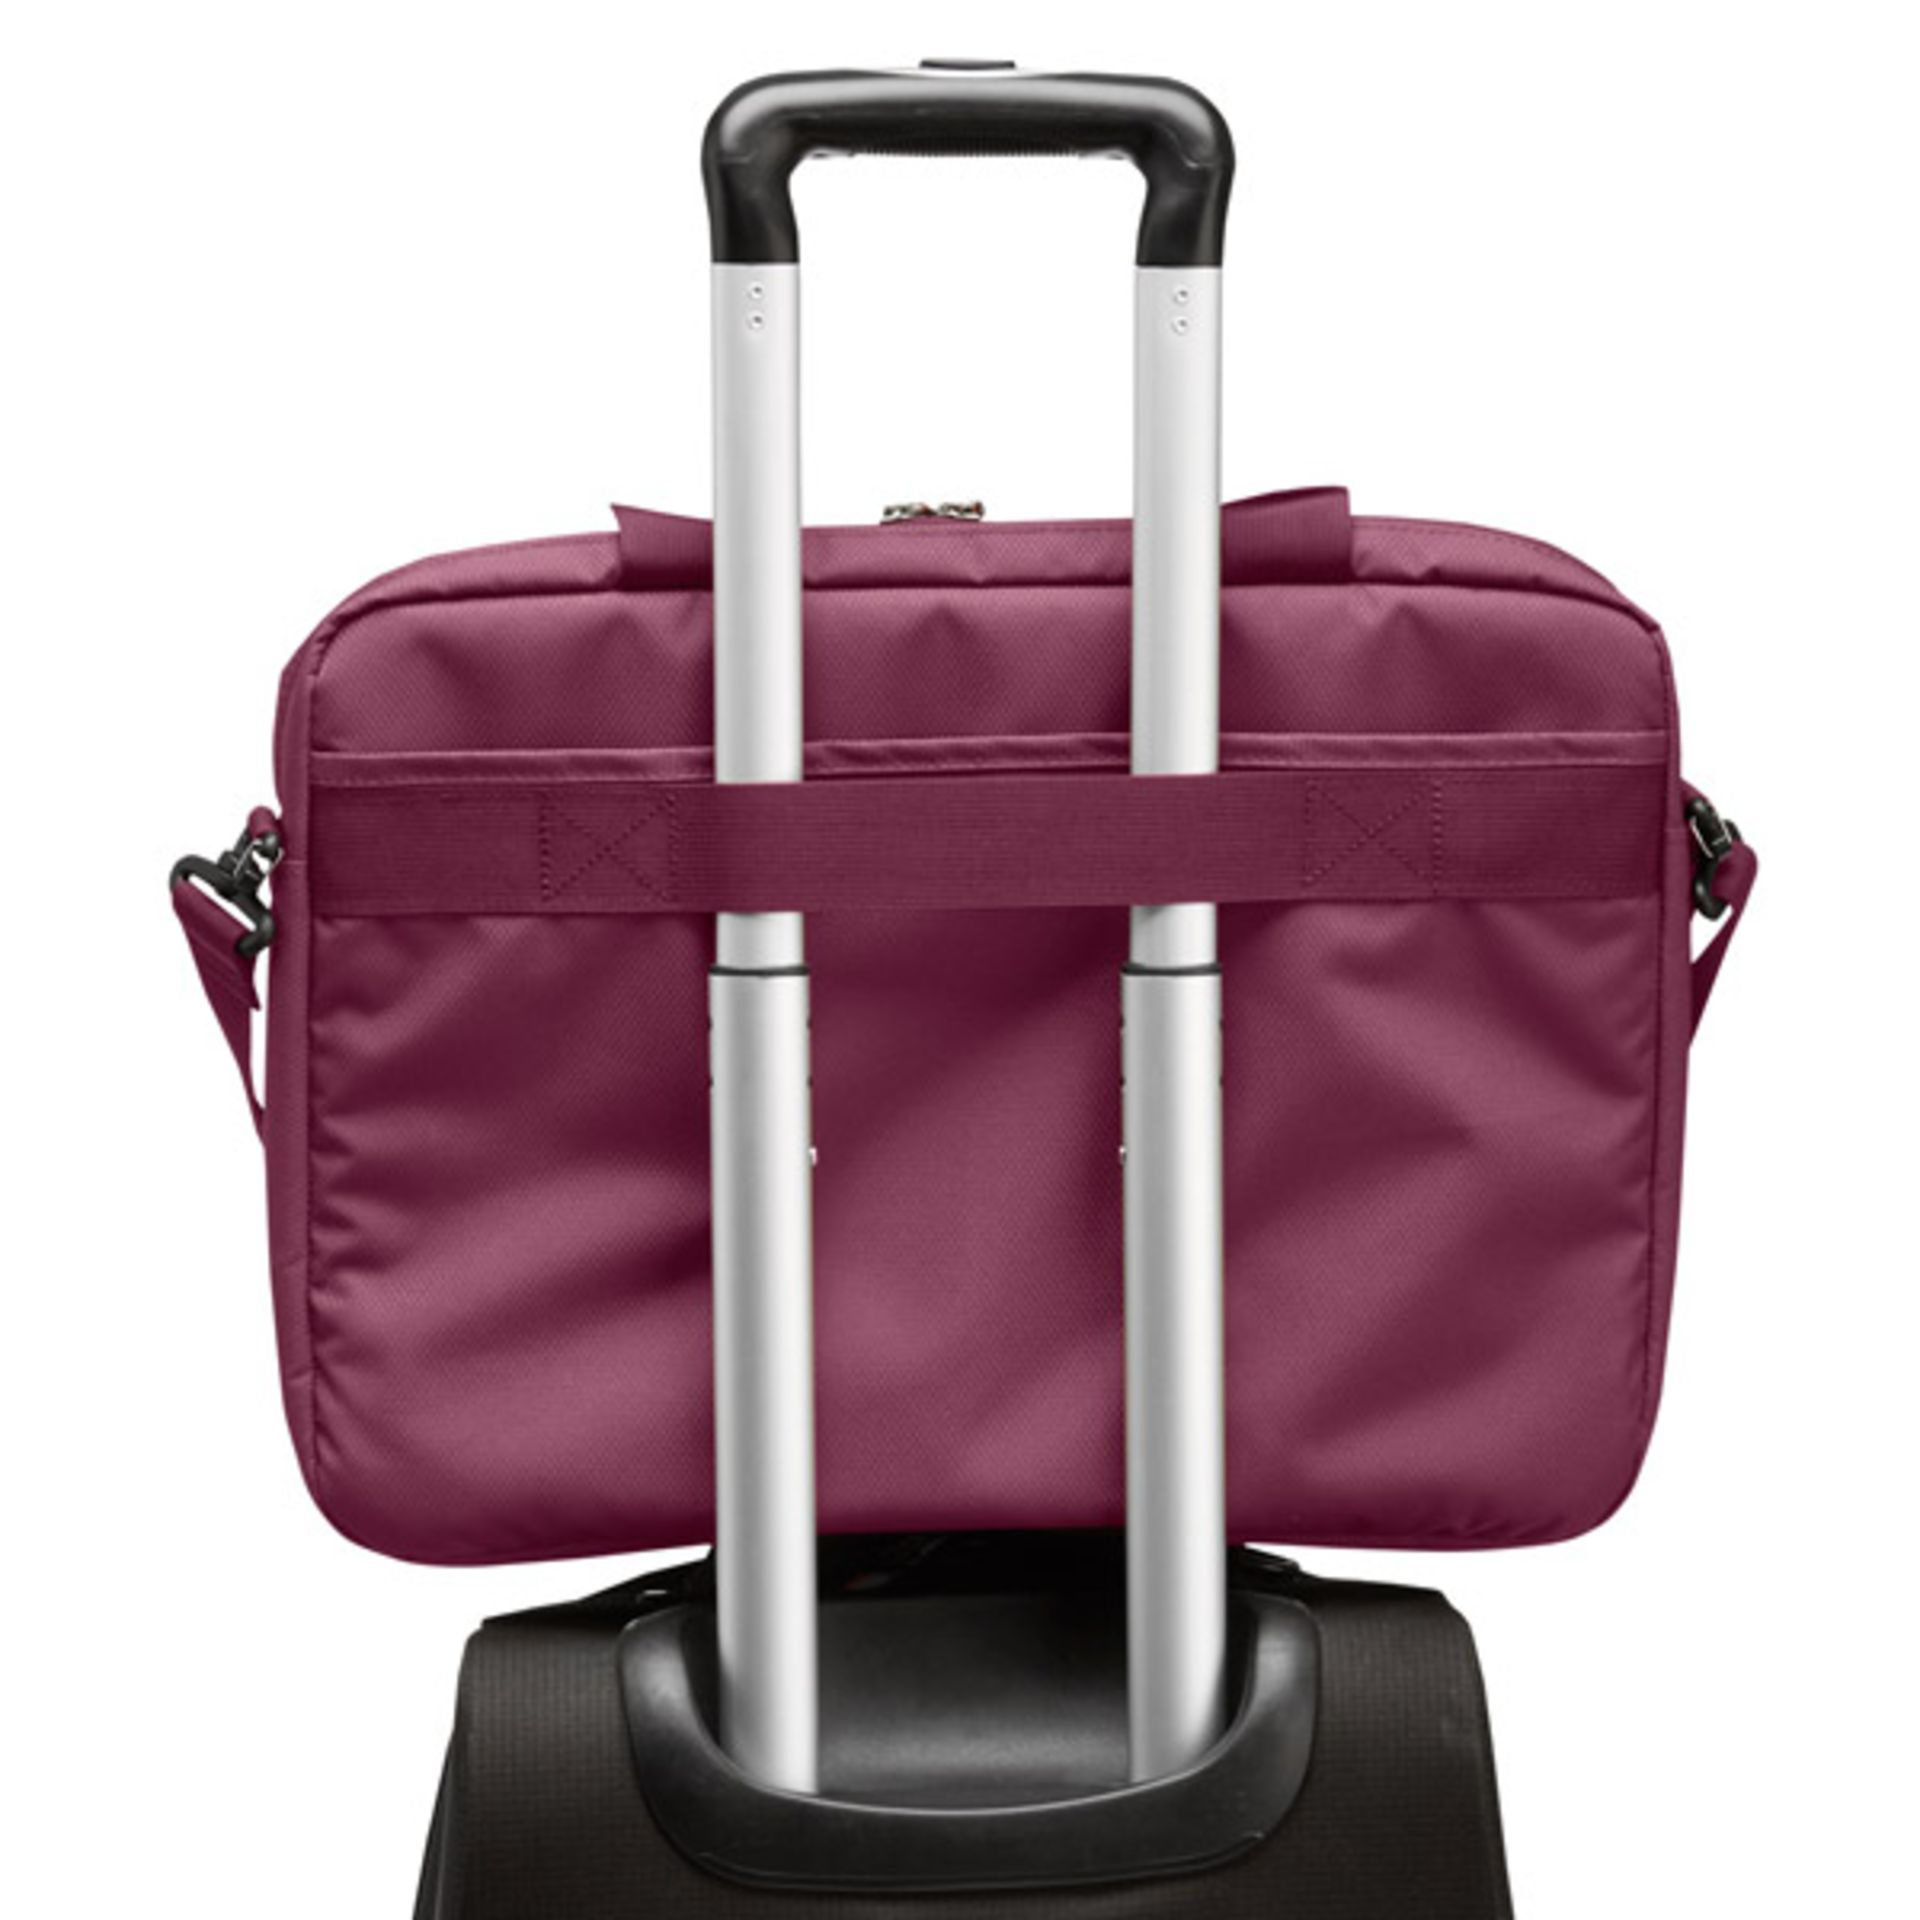 + VAT Brand New Medium Shoulder Bag - RRP £42.99 Amazon Price £33.57 - For Laptop/Tablet Up To - Image 2 of 3